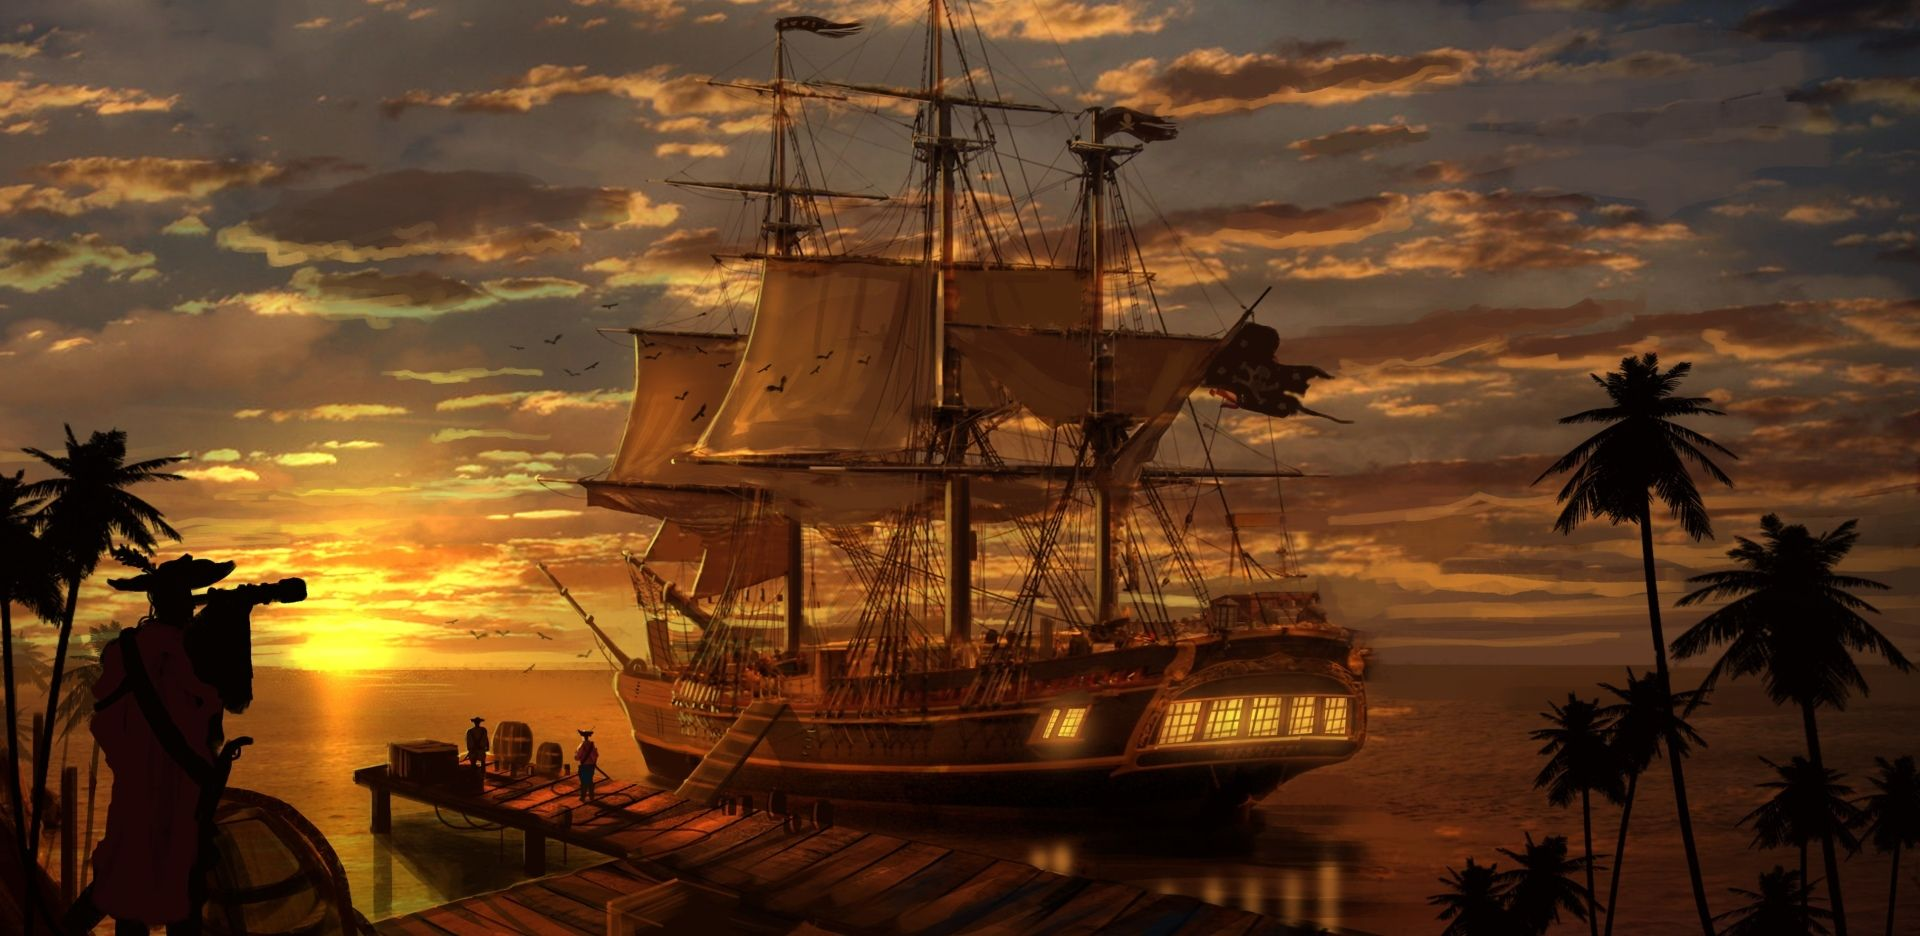 fantasy ship dock loading departure pirate ship pirate pier sunset